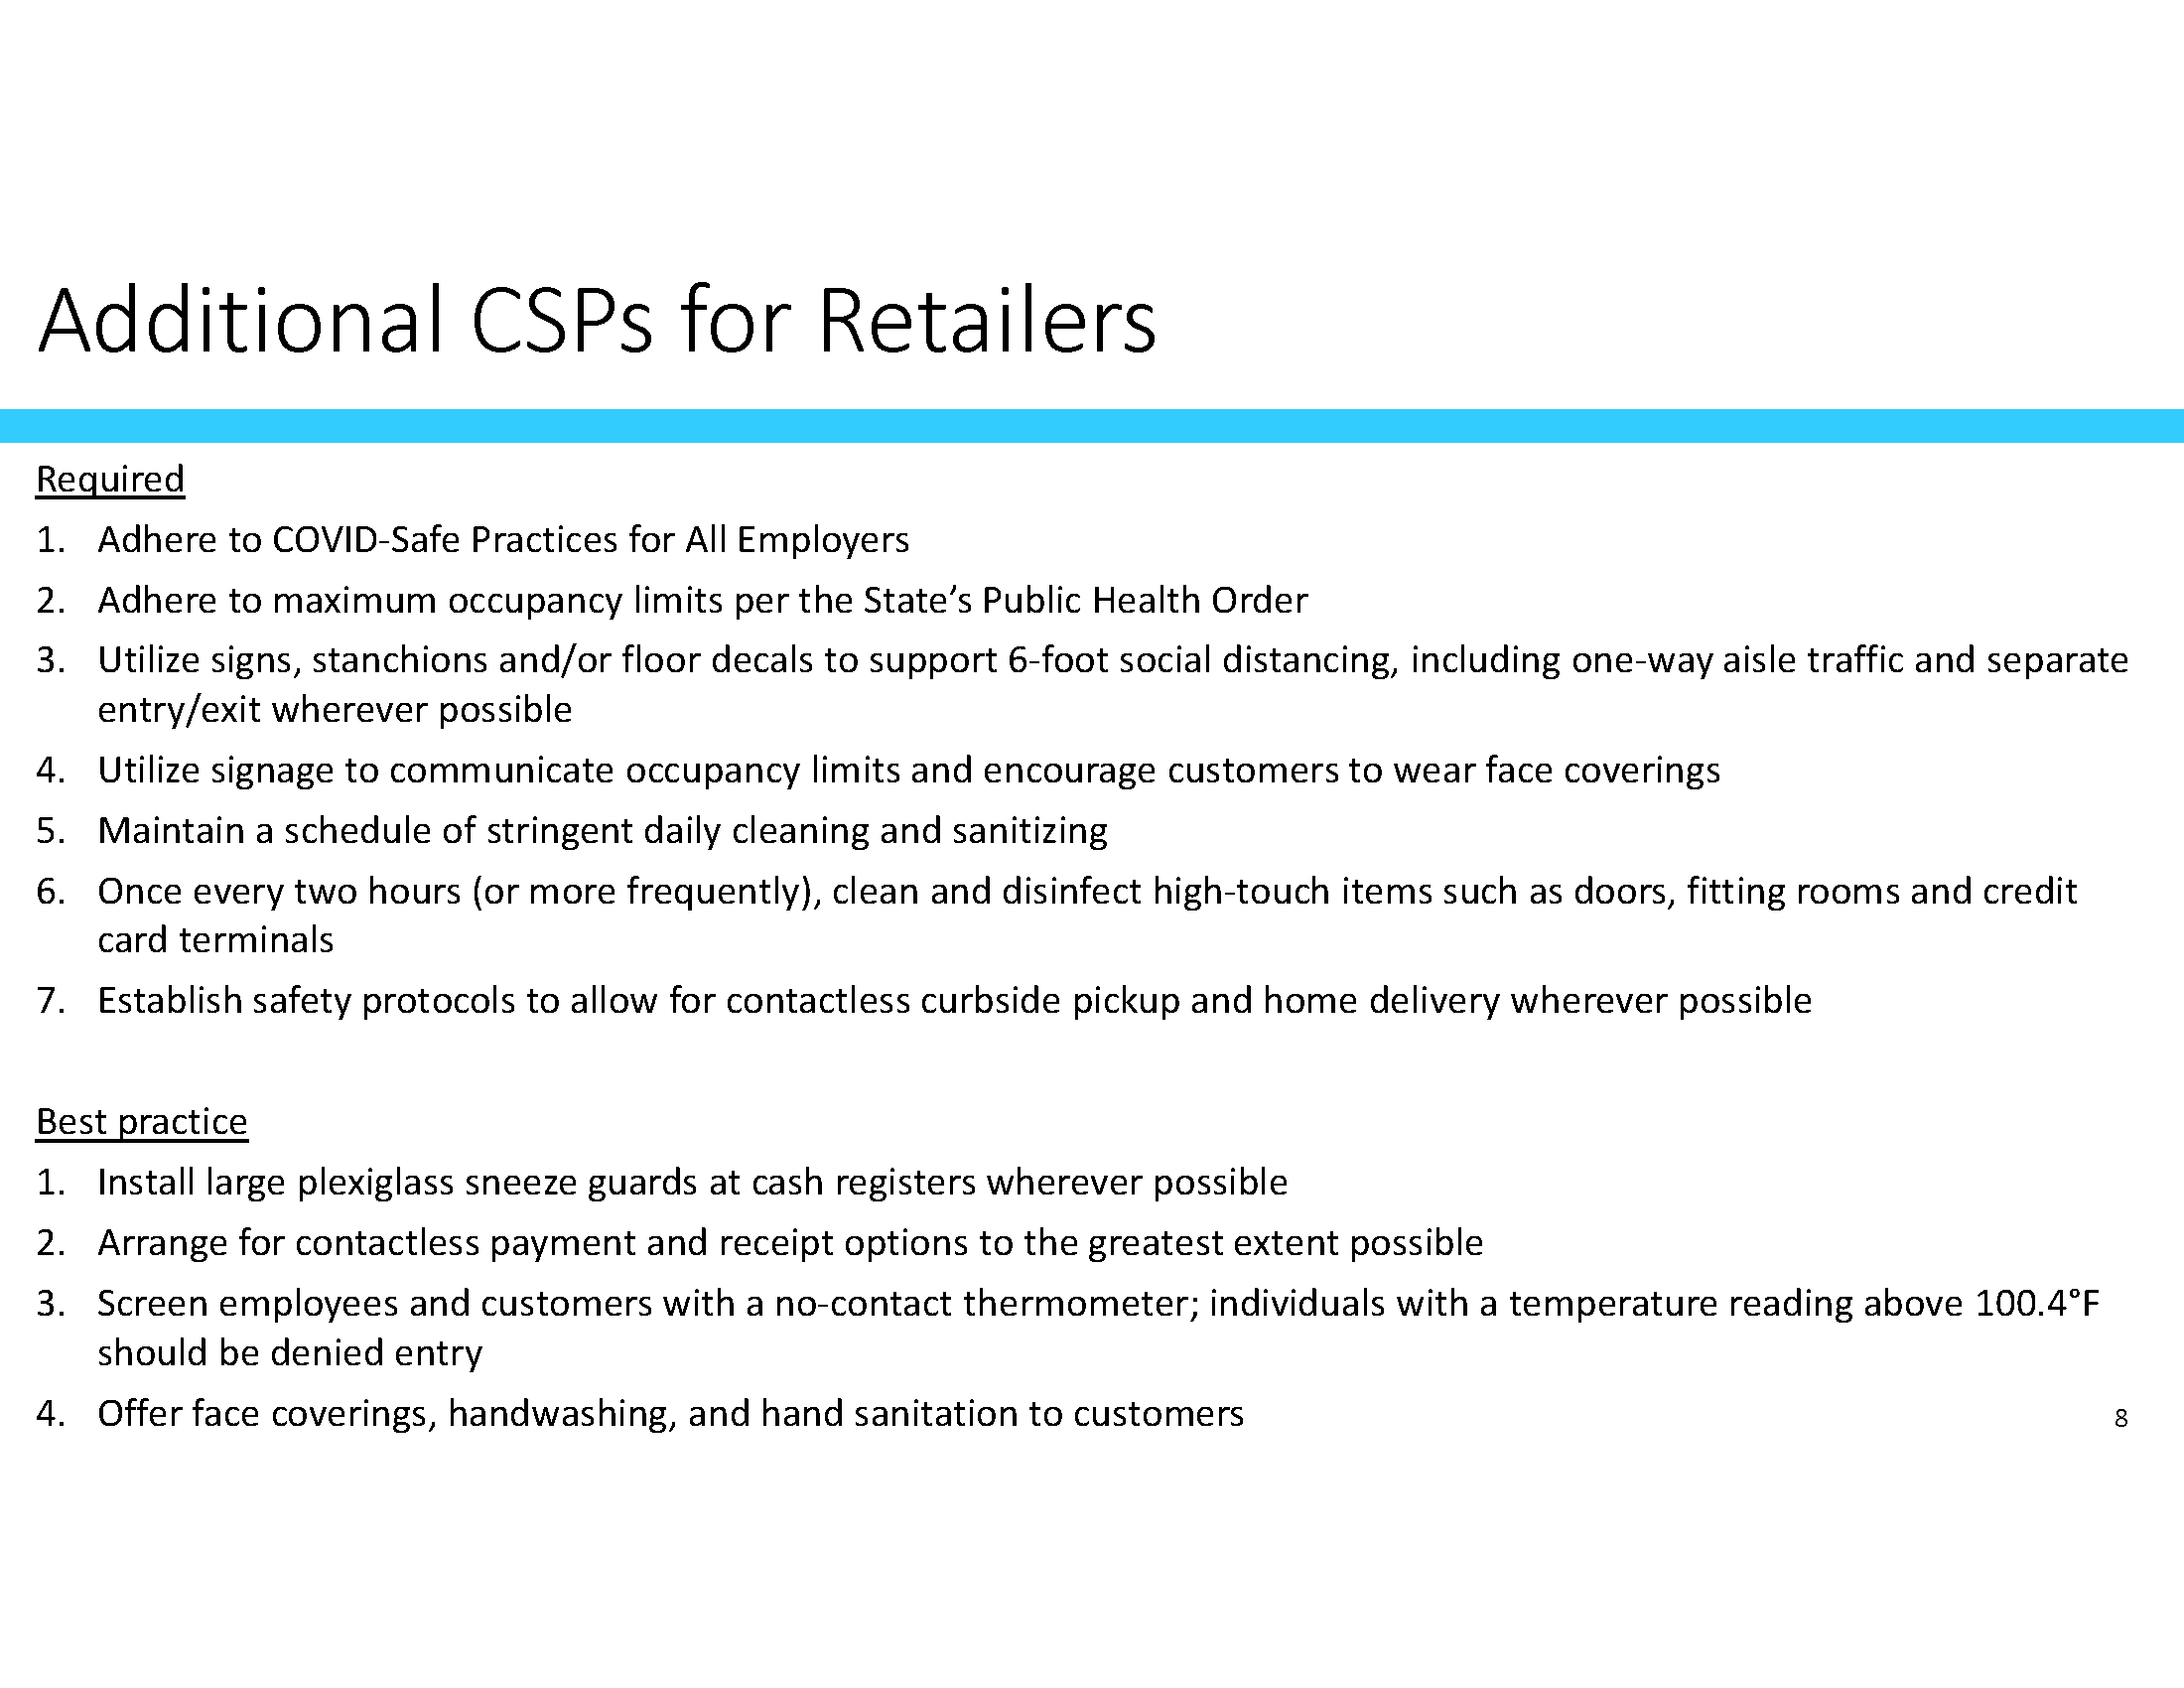 Additional CSP for retailers